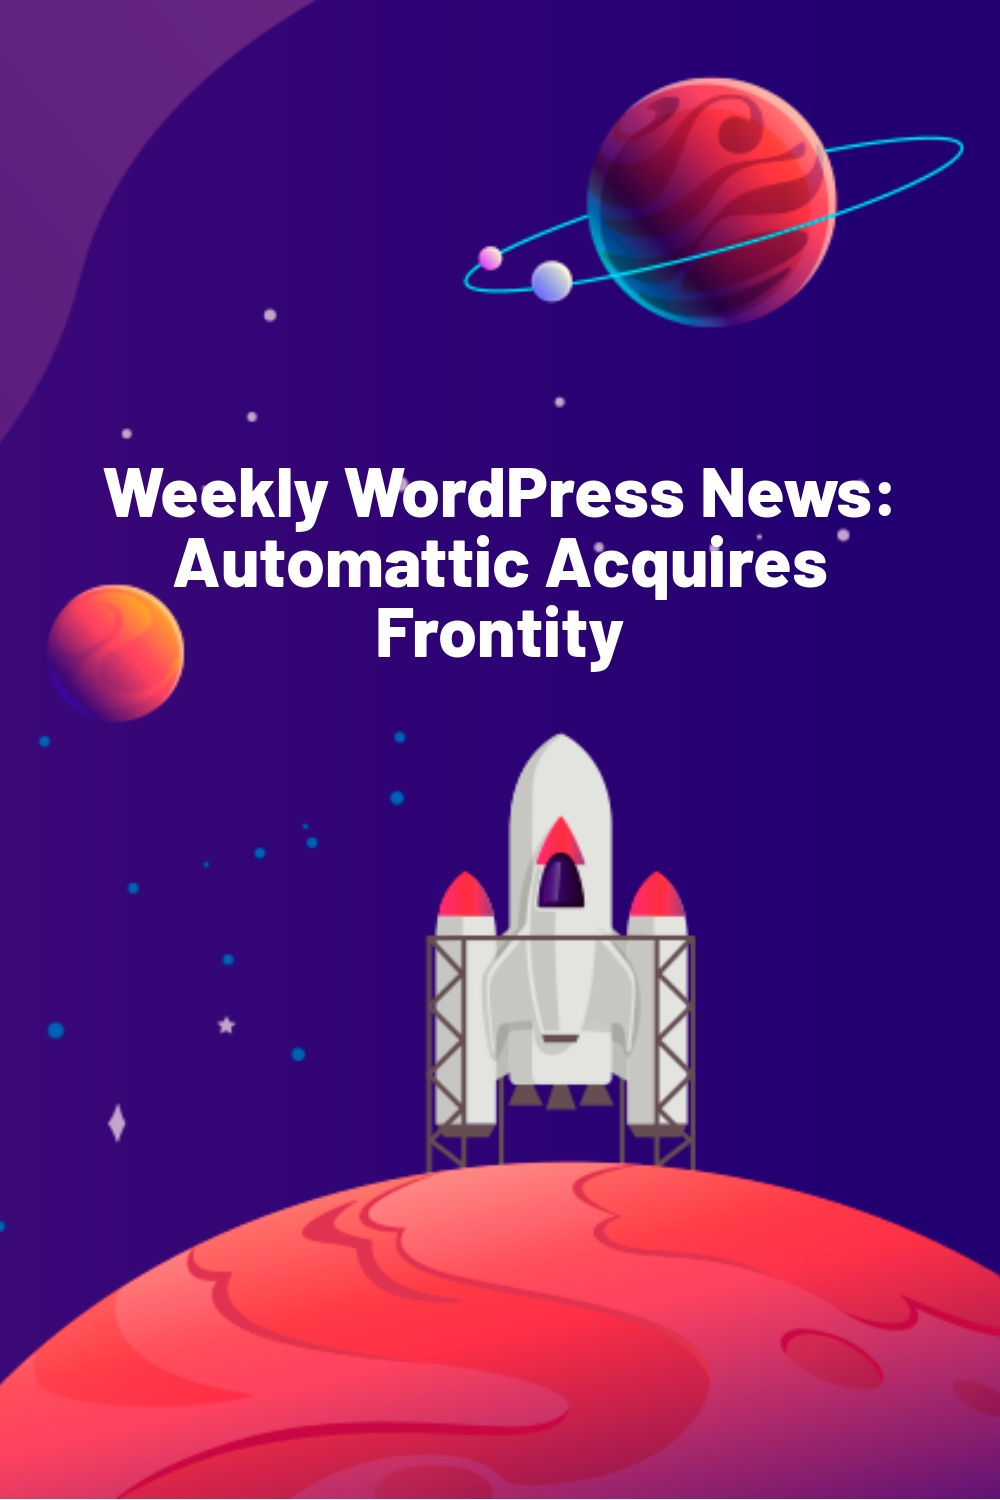 Weekly WordPress News:  Automattic Acquires Frontity